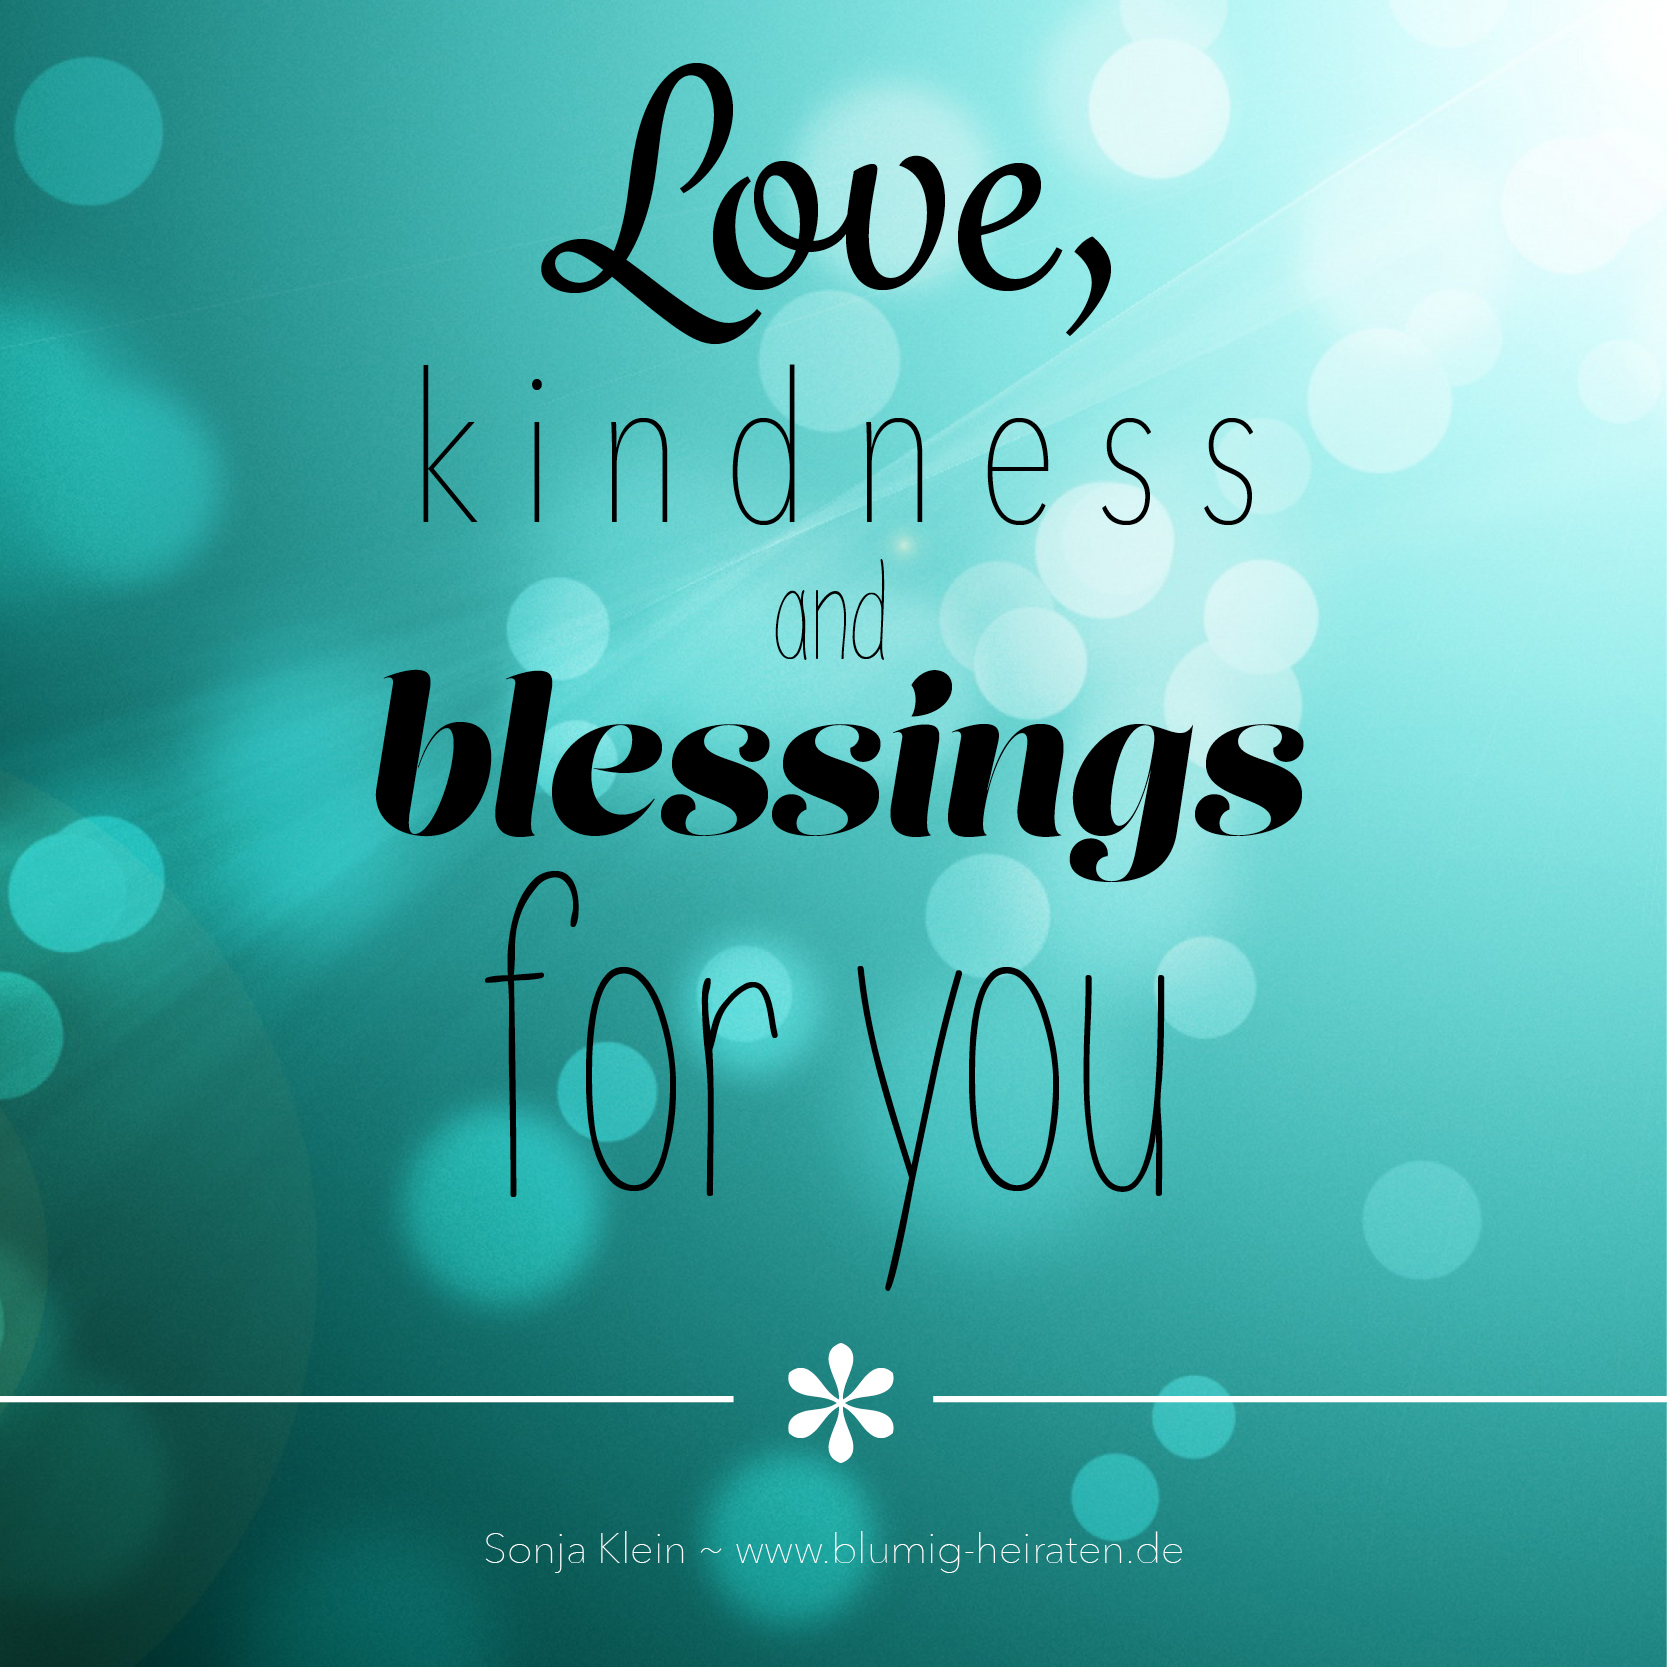 Love,kindness and blessings for you